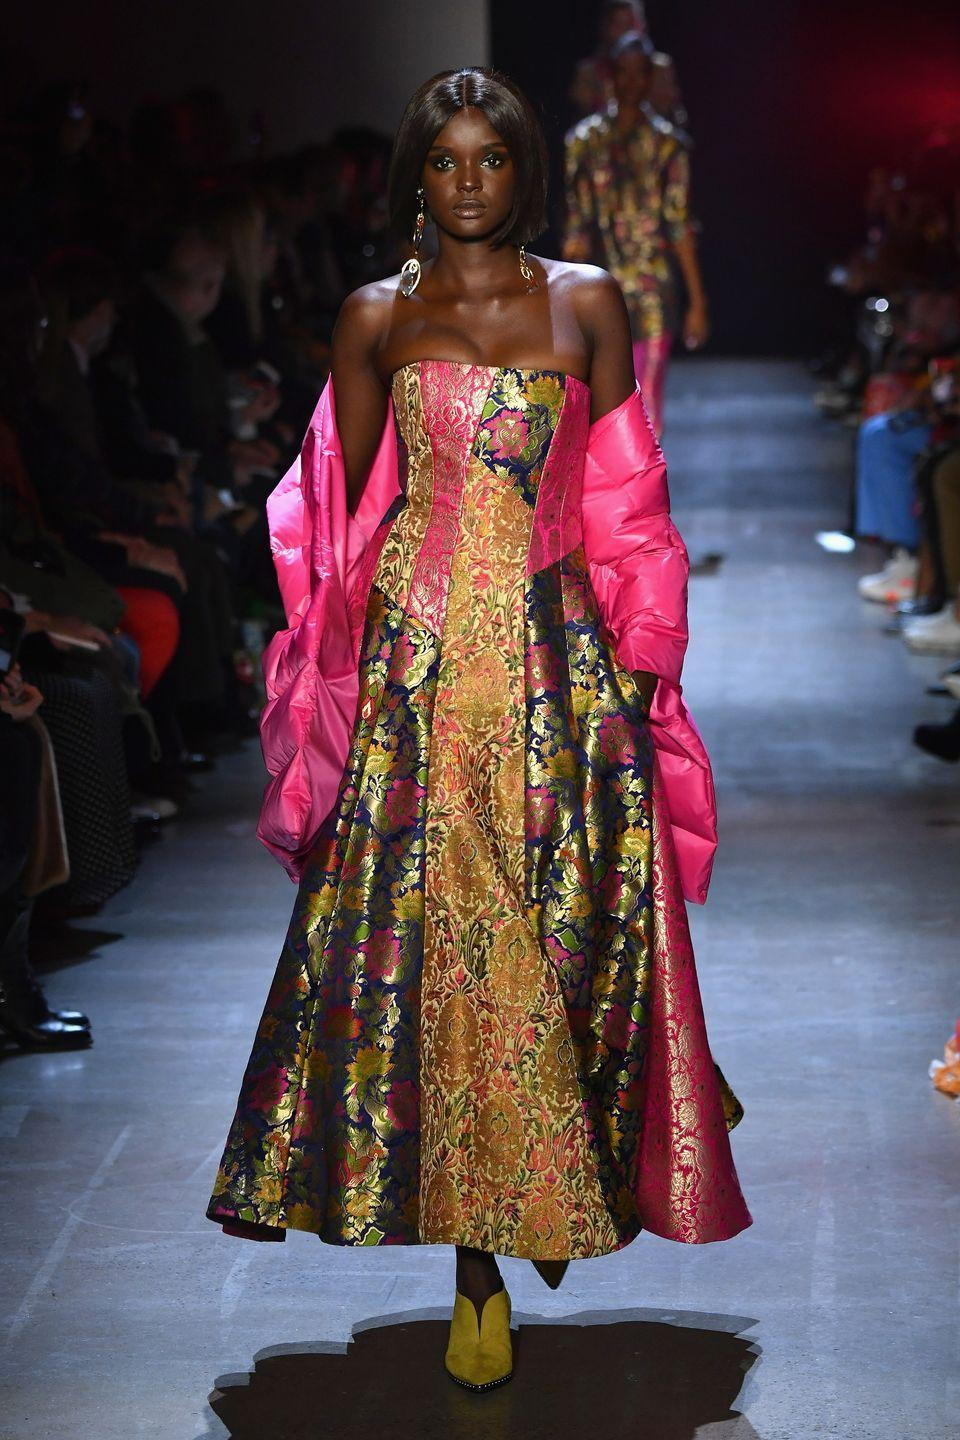 "<p>Duckie made her <a href=""https://www.independent.co.uk/life-style/fashion/duckie-thot-instagram-loreal-paris-ambassador-model-who-how-a8553931.html"" rel=""nofollow noopener"" target=""_blank"" data-ylk=""slk:runway debut"" class=""link rapid-noclick-resp"">runway debut</a> at the Yeezy spring/summer 2017 show. Imagine that being your first gig?! She's appeared in major campaigns for Moschino and Oscar de la Renta, but got her start on <em>Australia's Next Top Model</em>, when she finished as one of the top three contestants on the show. </p>"